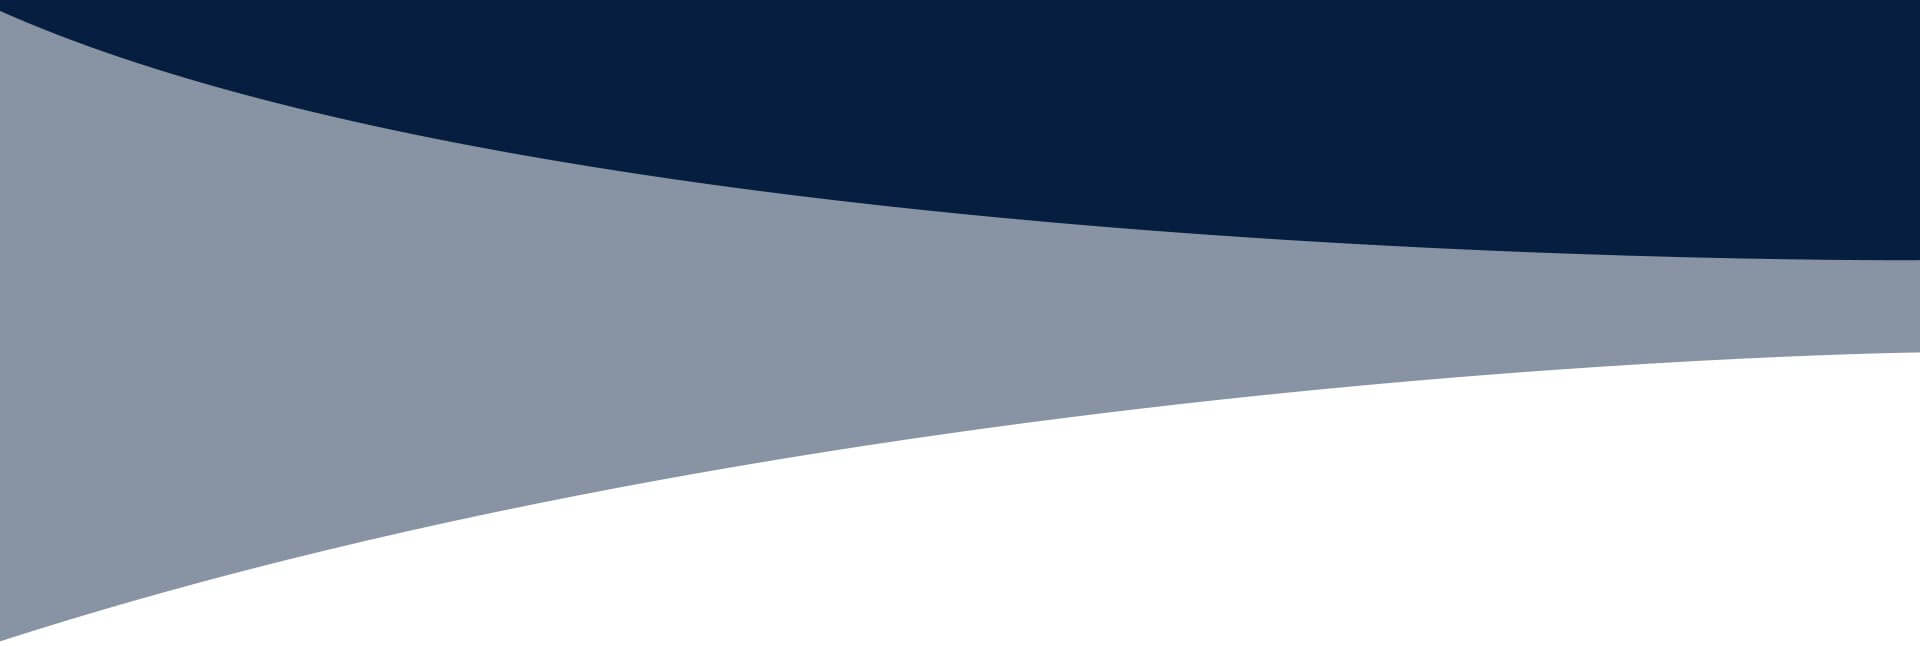 navy blue grey white background